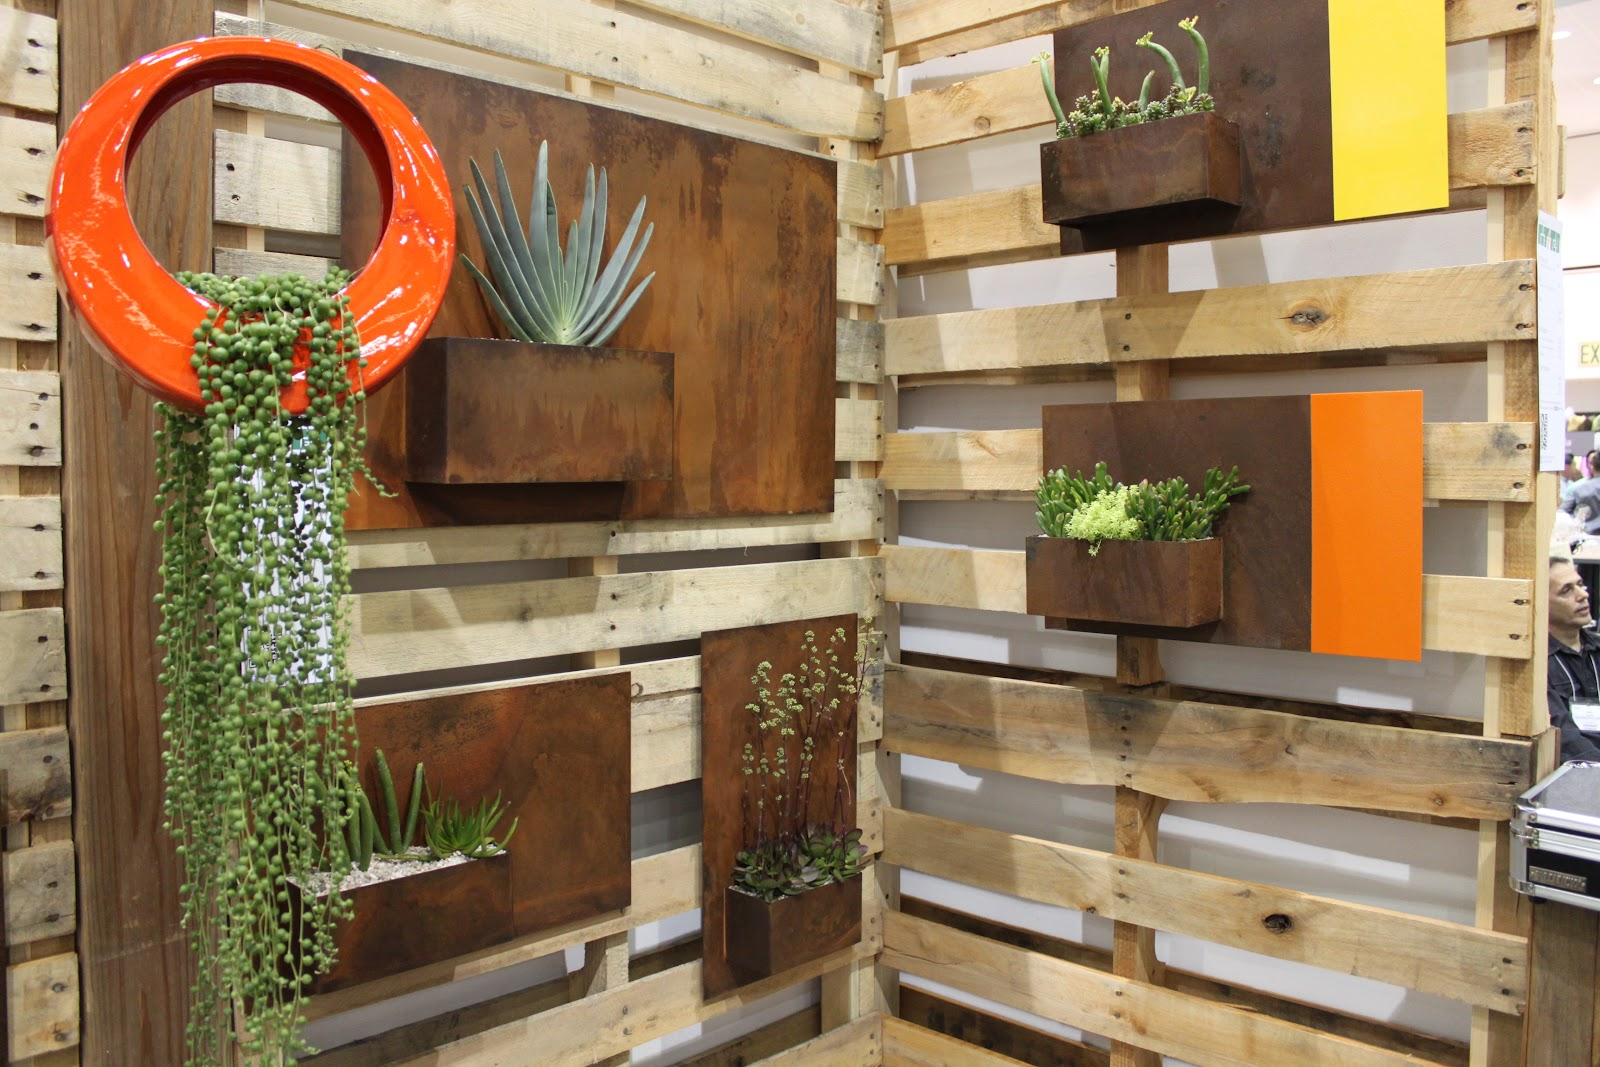 Dwell on design landscape idea 2 modern wall planters Mid century modern design ideas